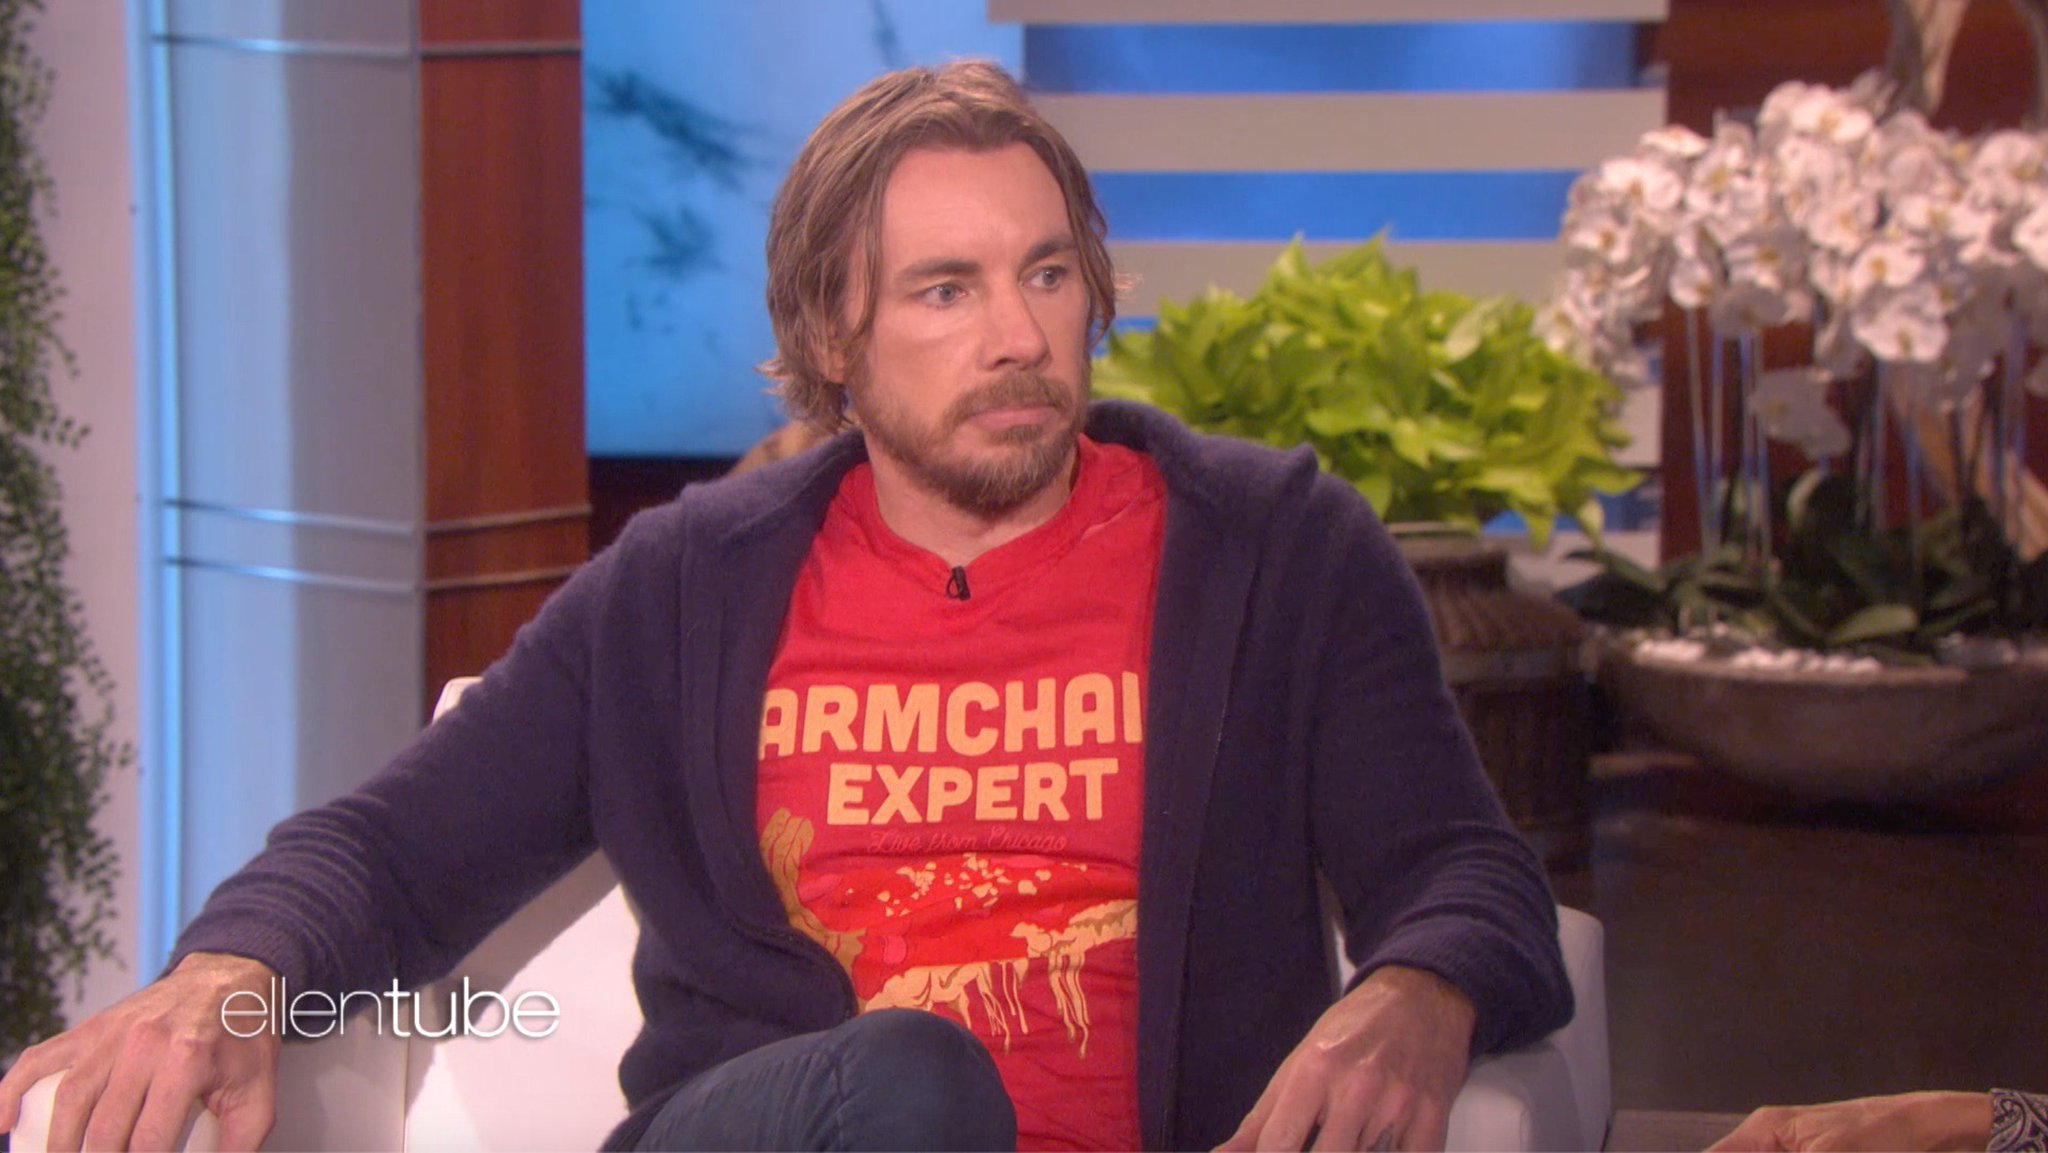 """.@DaxShepard has a dream for the """"A Star Is Born"""" sequel. I hope you're okay with this, Bradley Cooper. https://t.co/sj1kbz6IW9"""